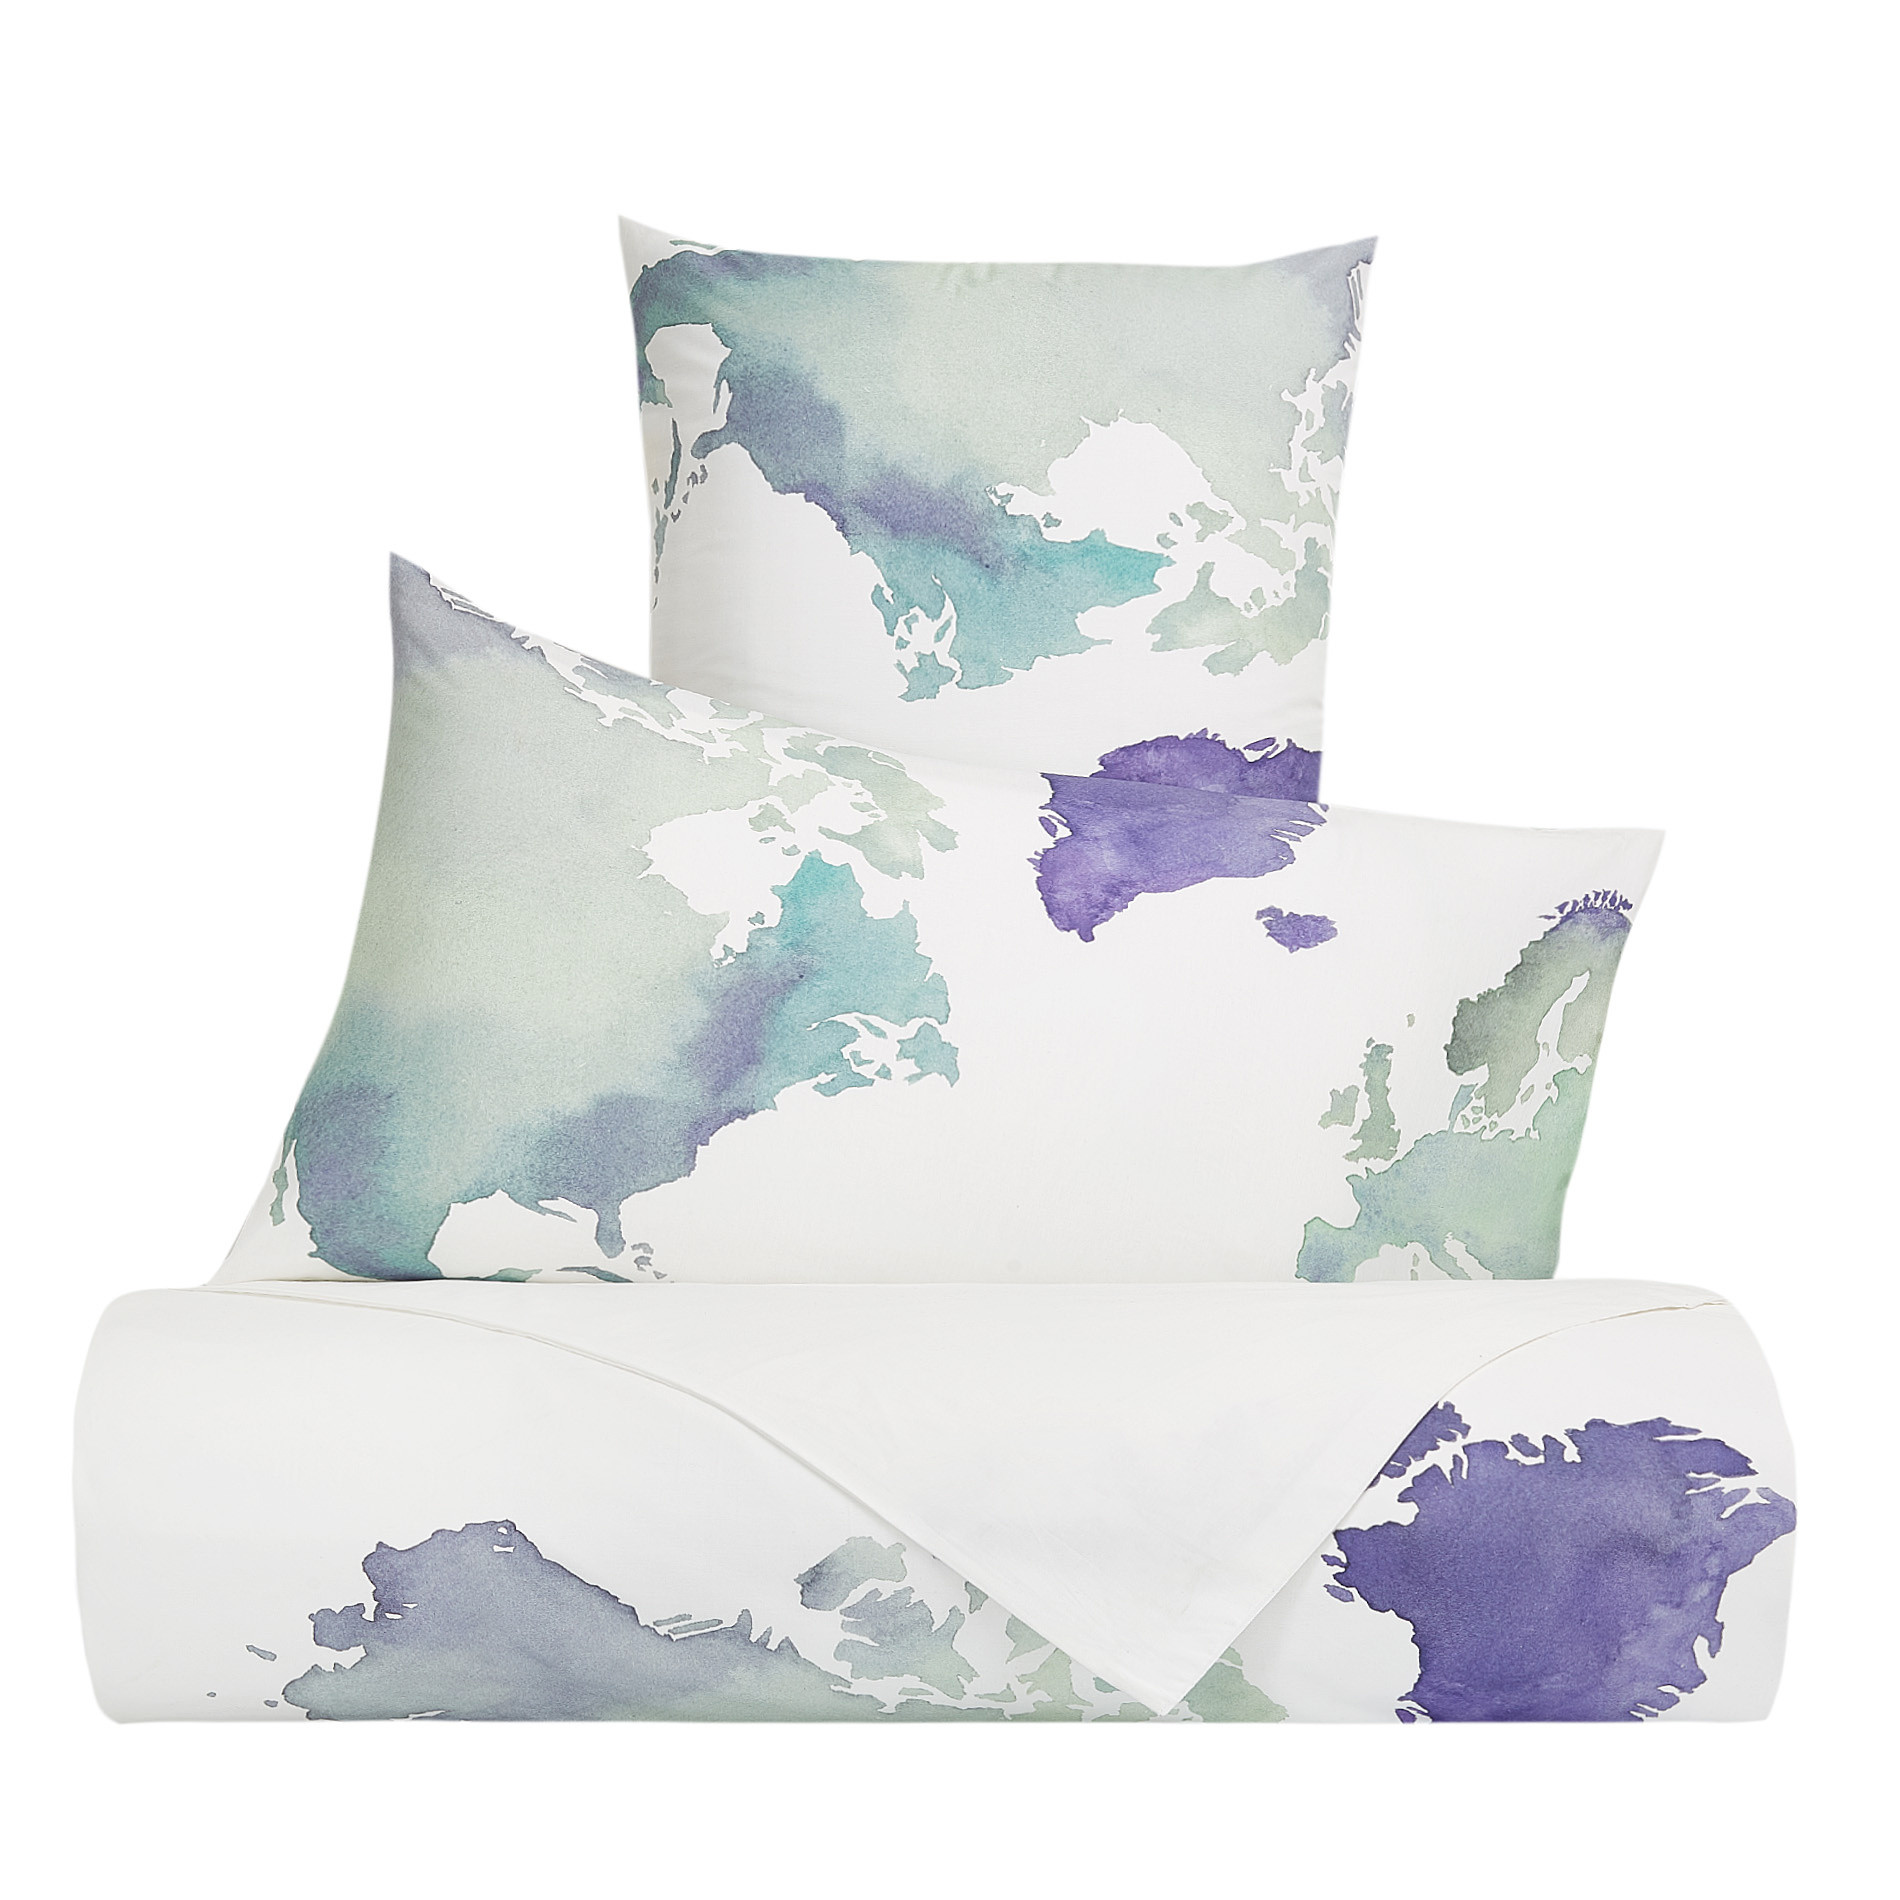 Copripiumino Coin.Duvet Cover Set In Cotton Percale With World Pattern Coincasa